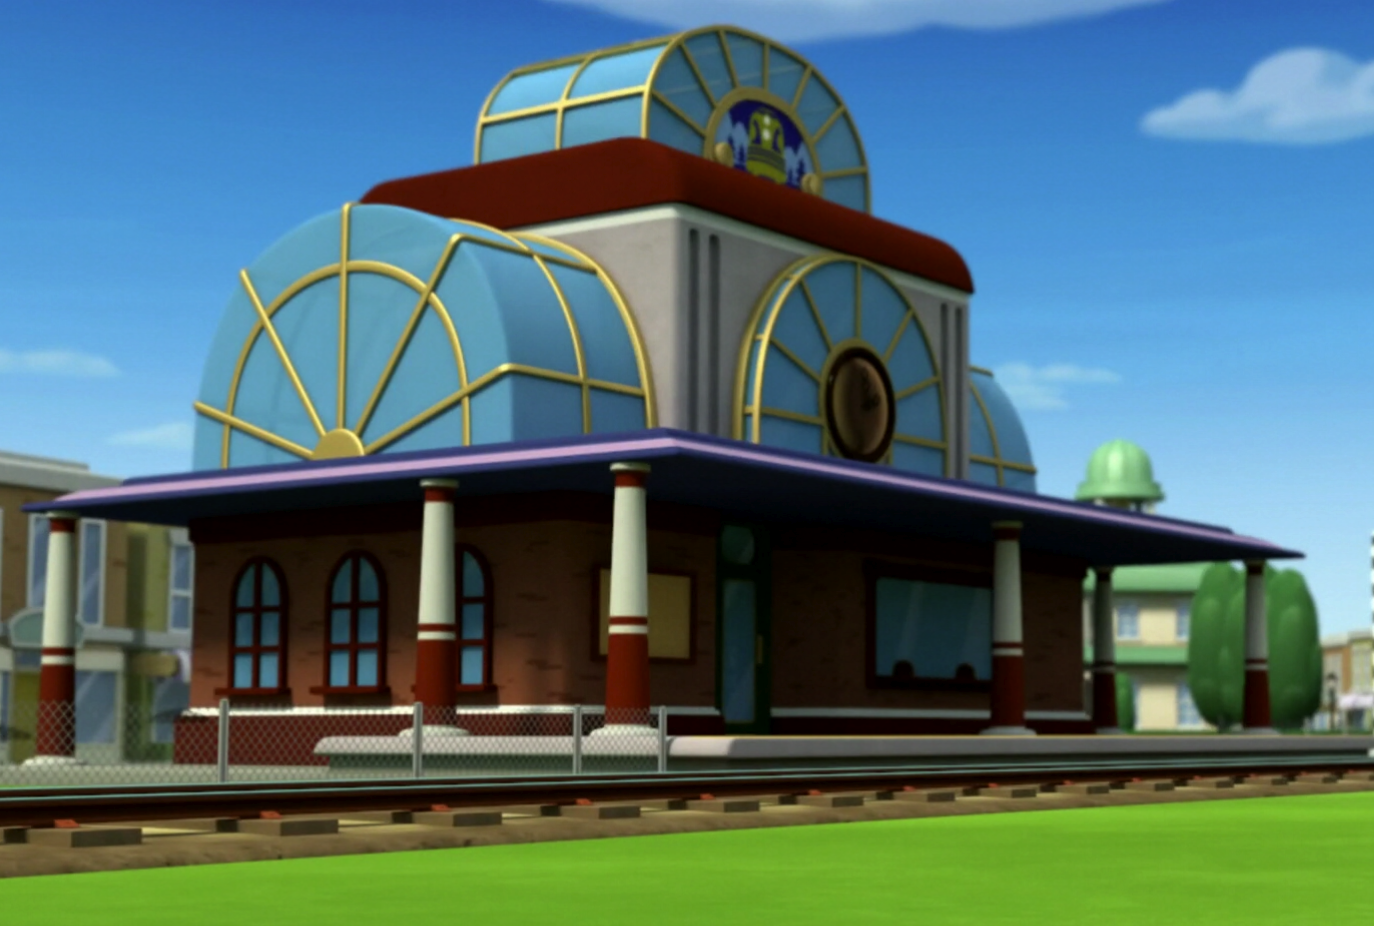 Train station/Gallery